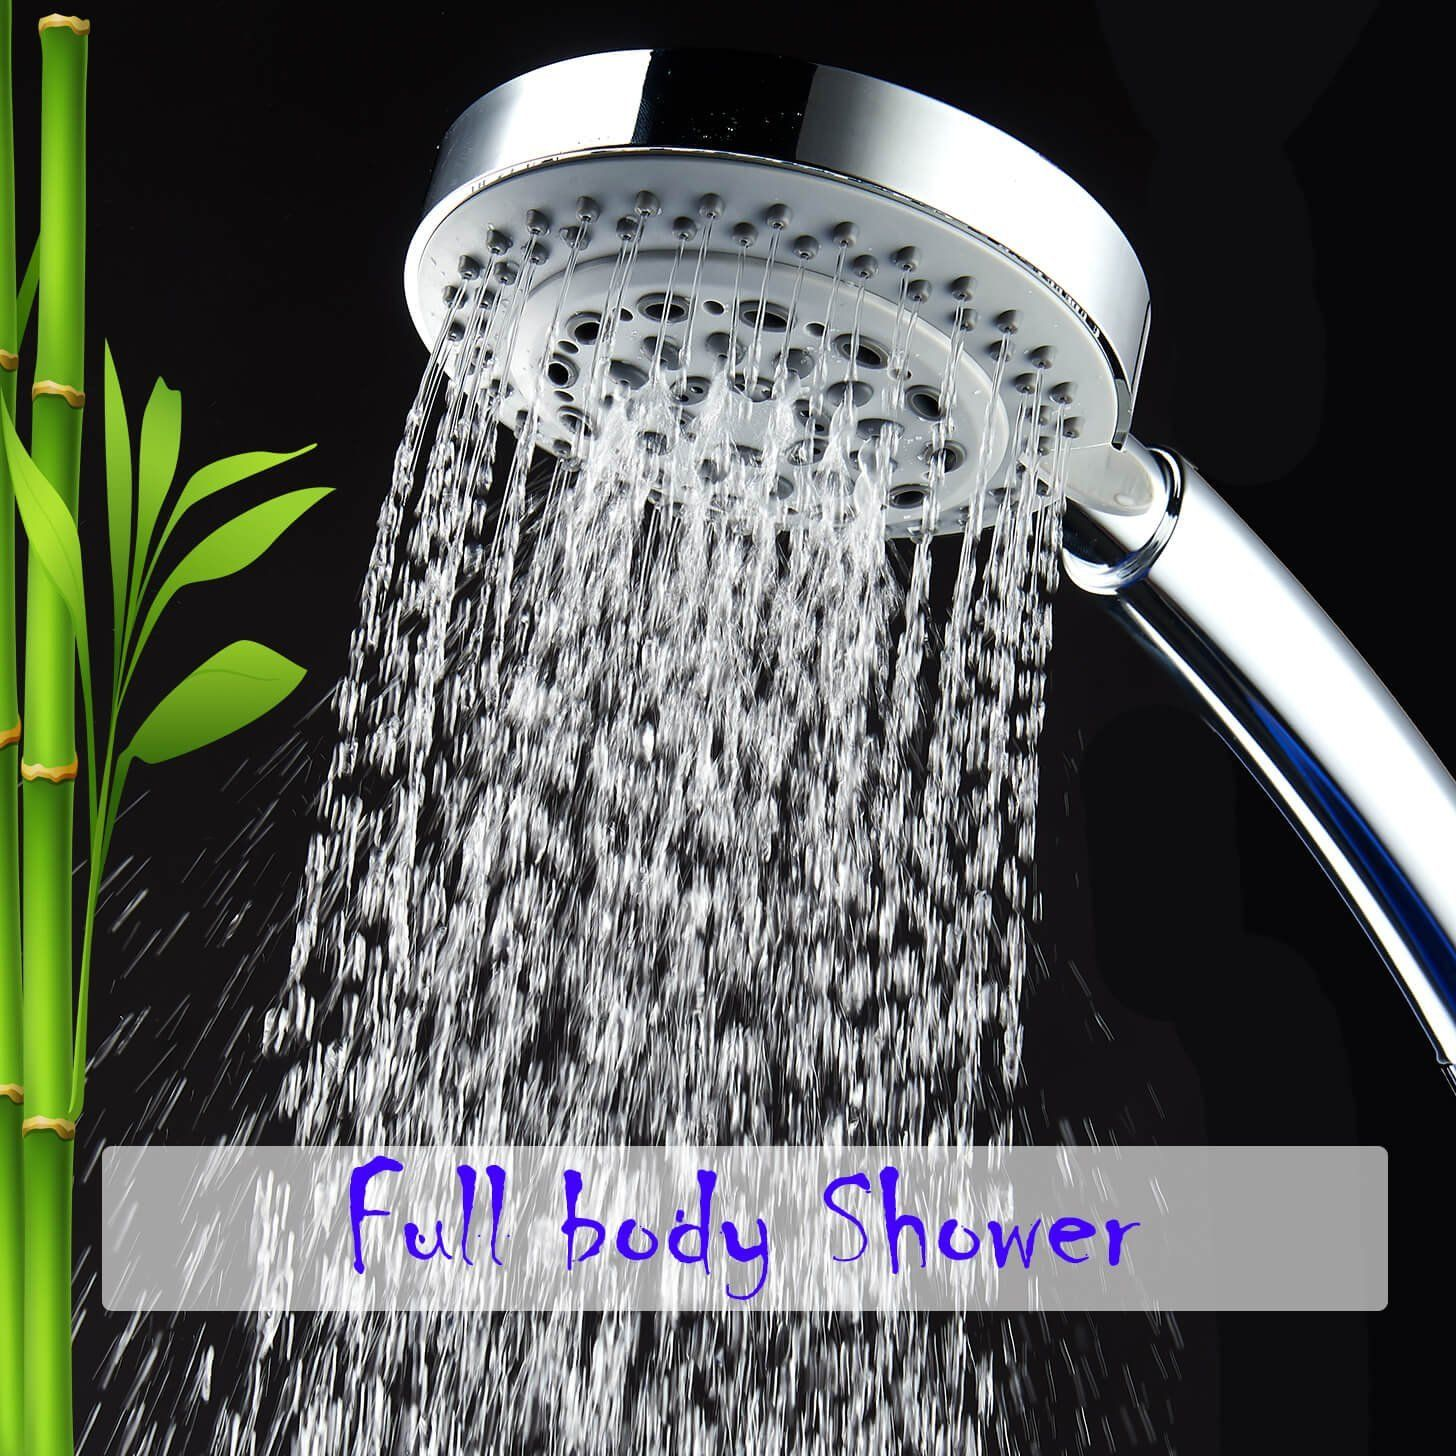 CaptainEco 8 Functions Hand Held Shower Head with 5-ft Flexible Hose ...